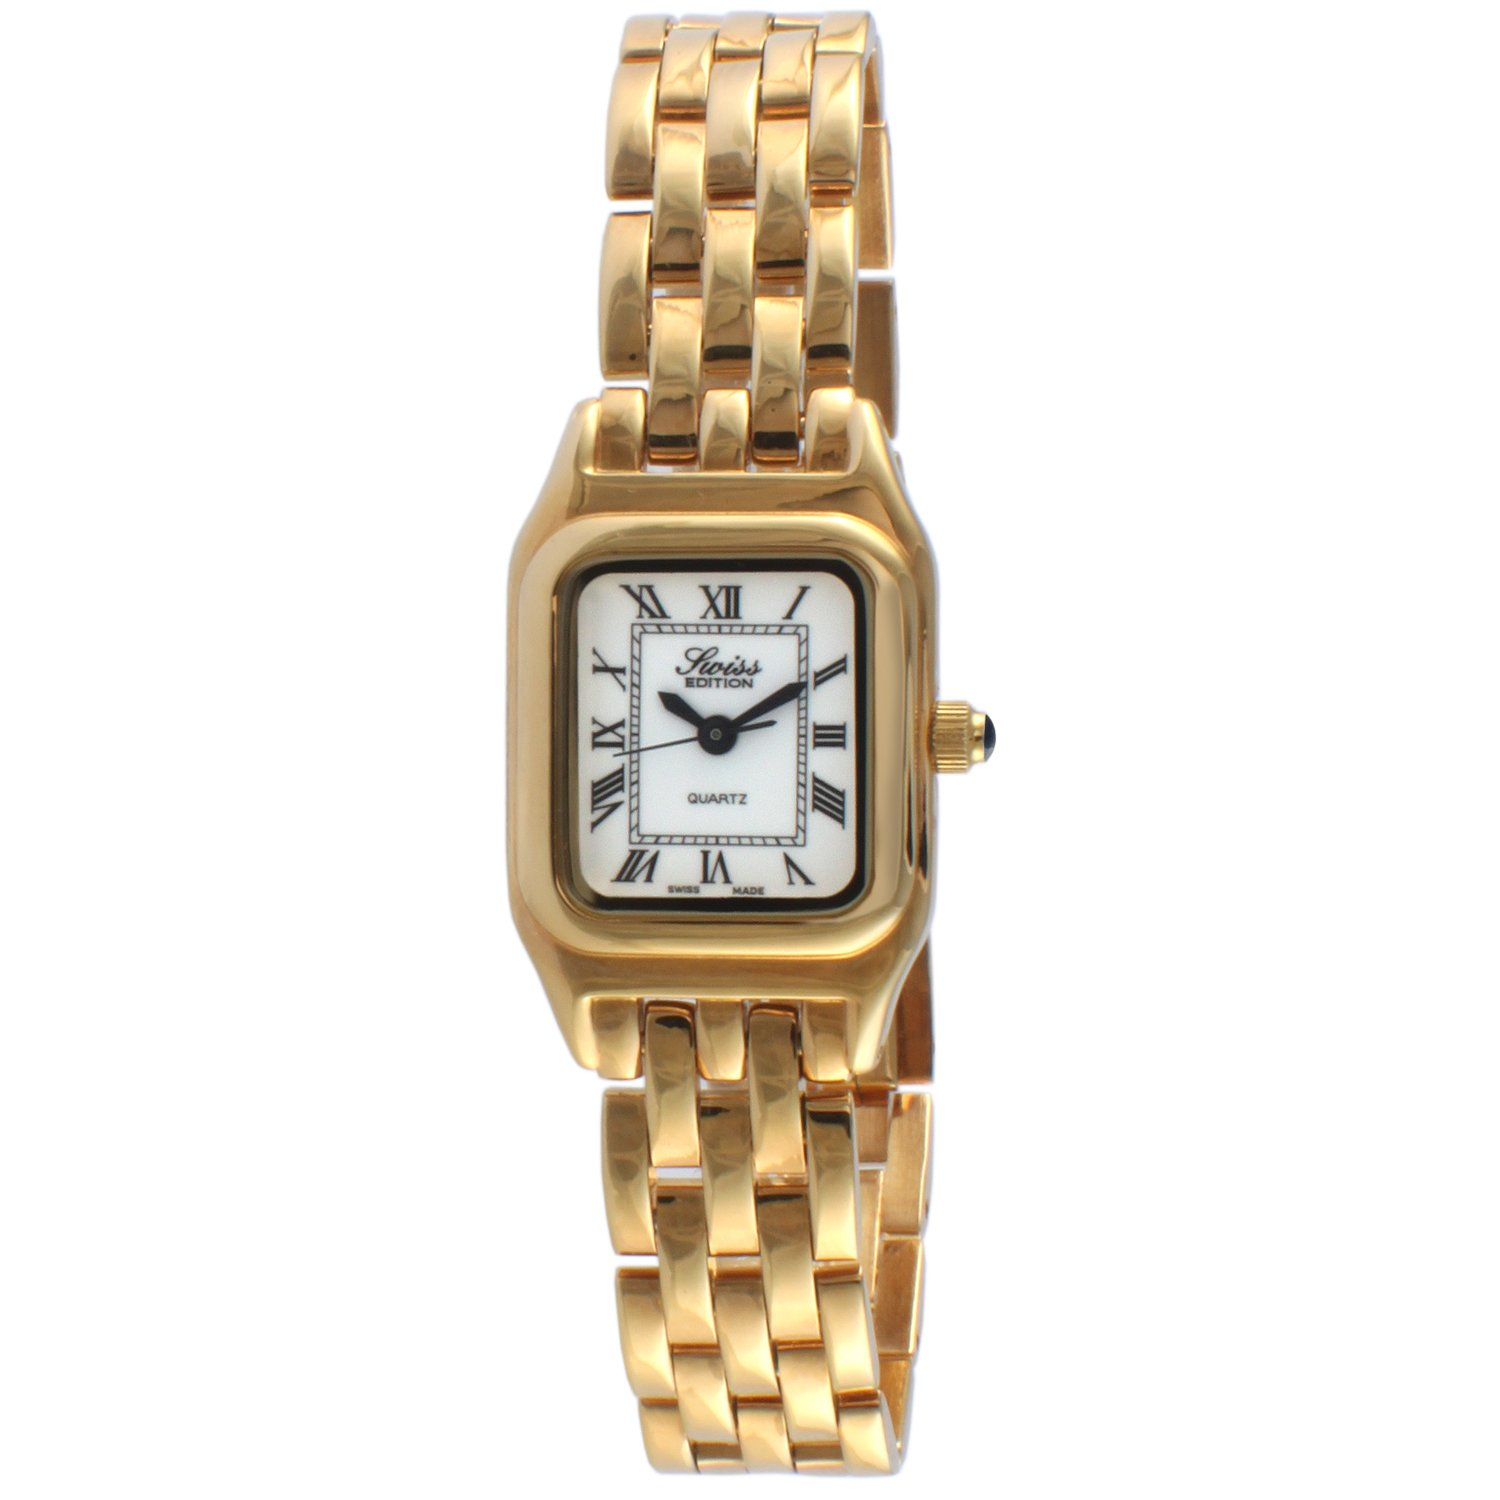 Swiss Edition Women's Square Tank Luxury 23K Gold Plated White Roman Numeral Dial Dress Watch SE3802-G